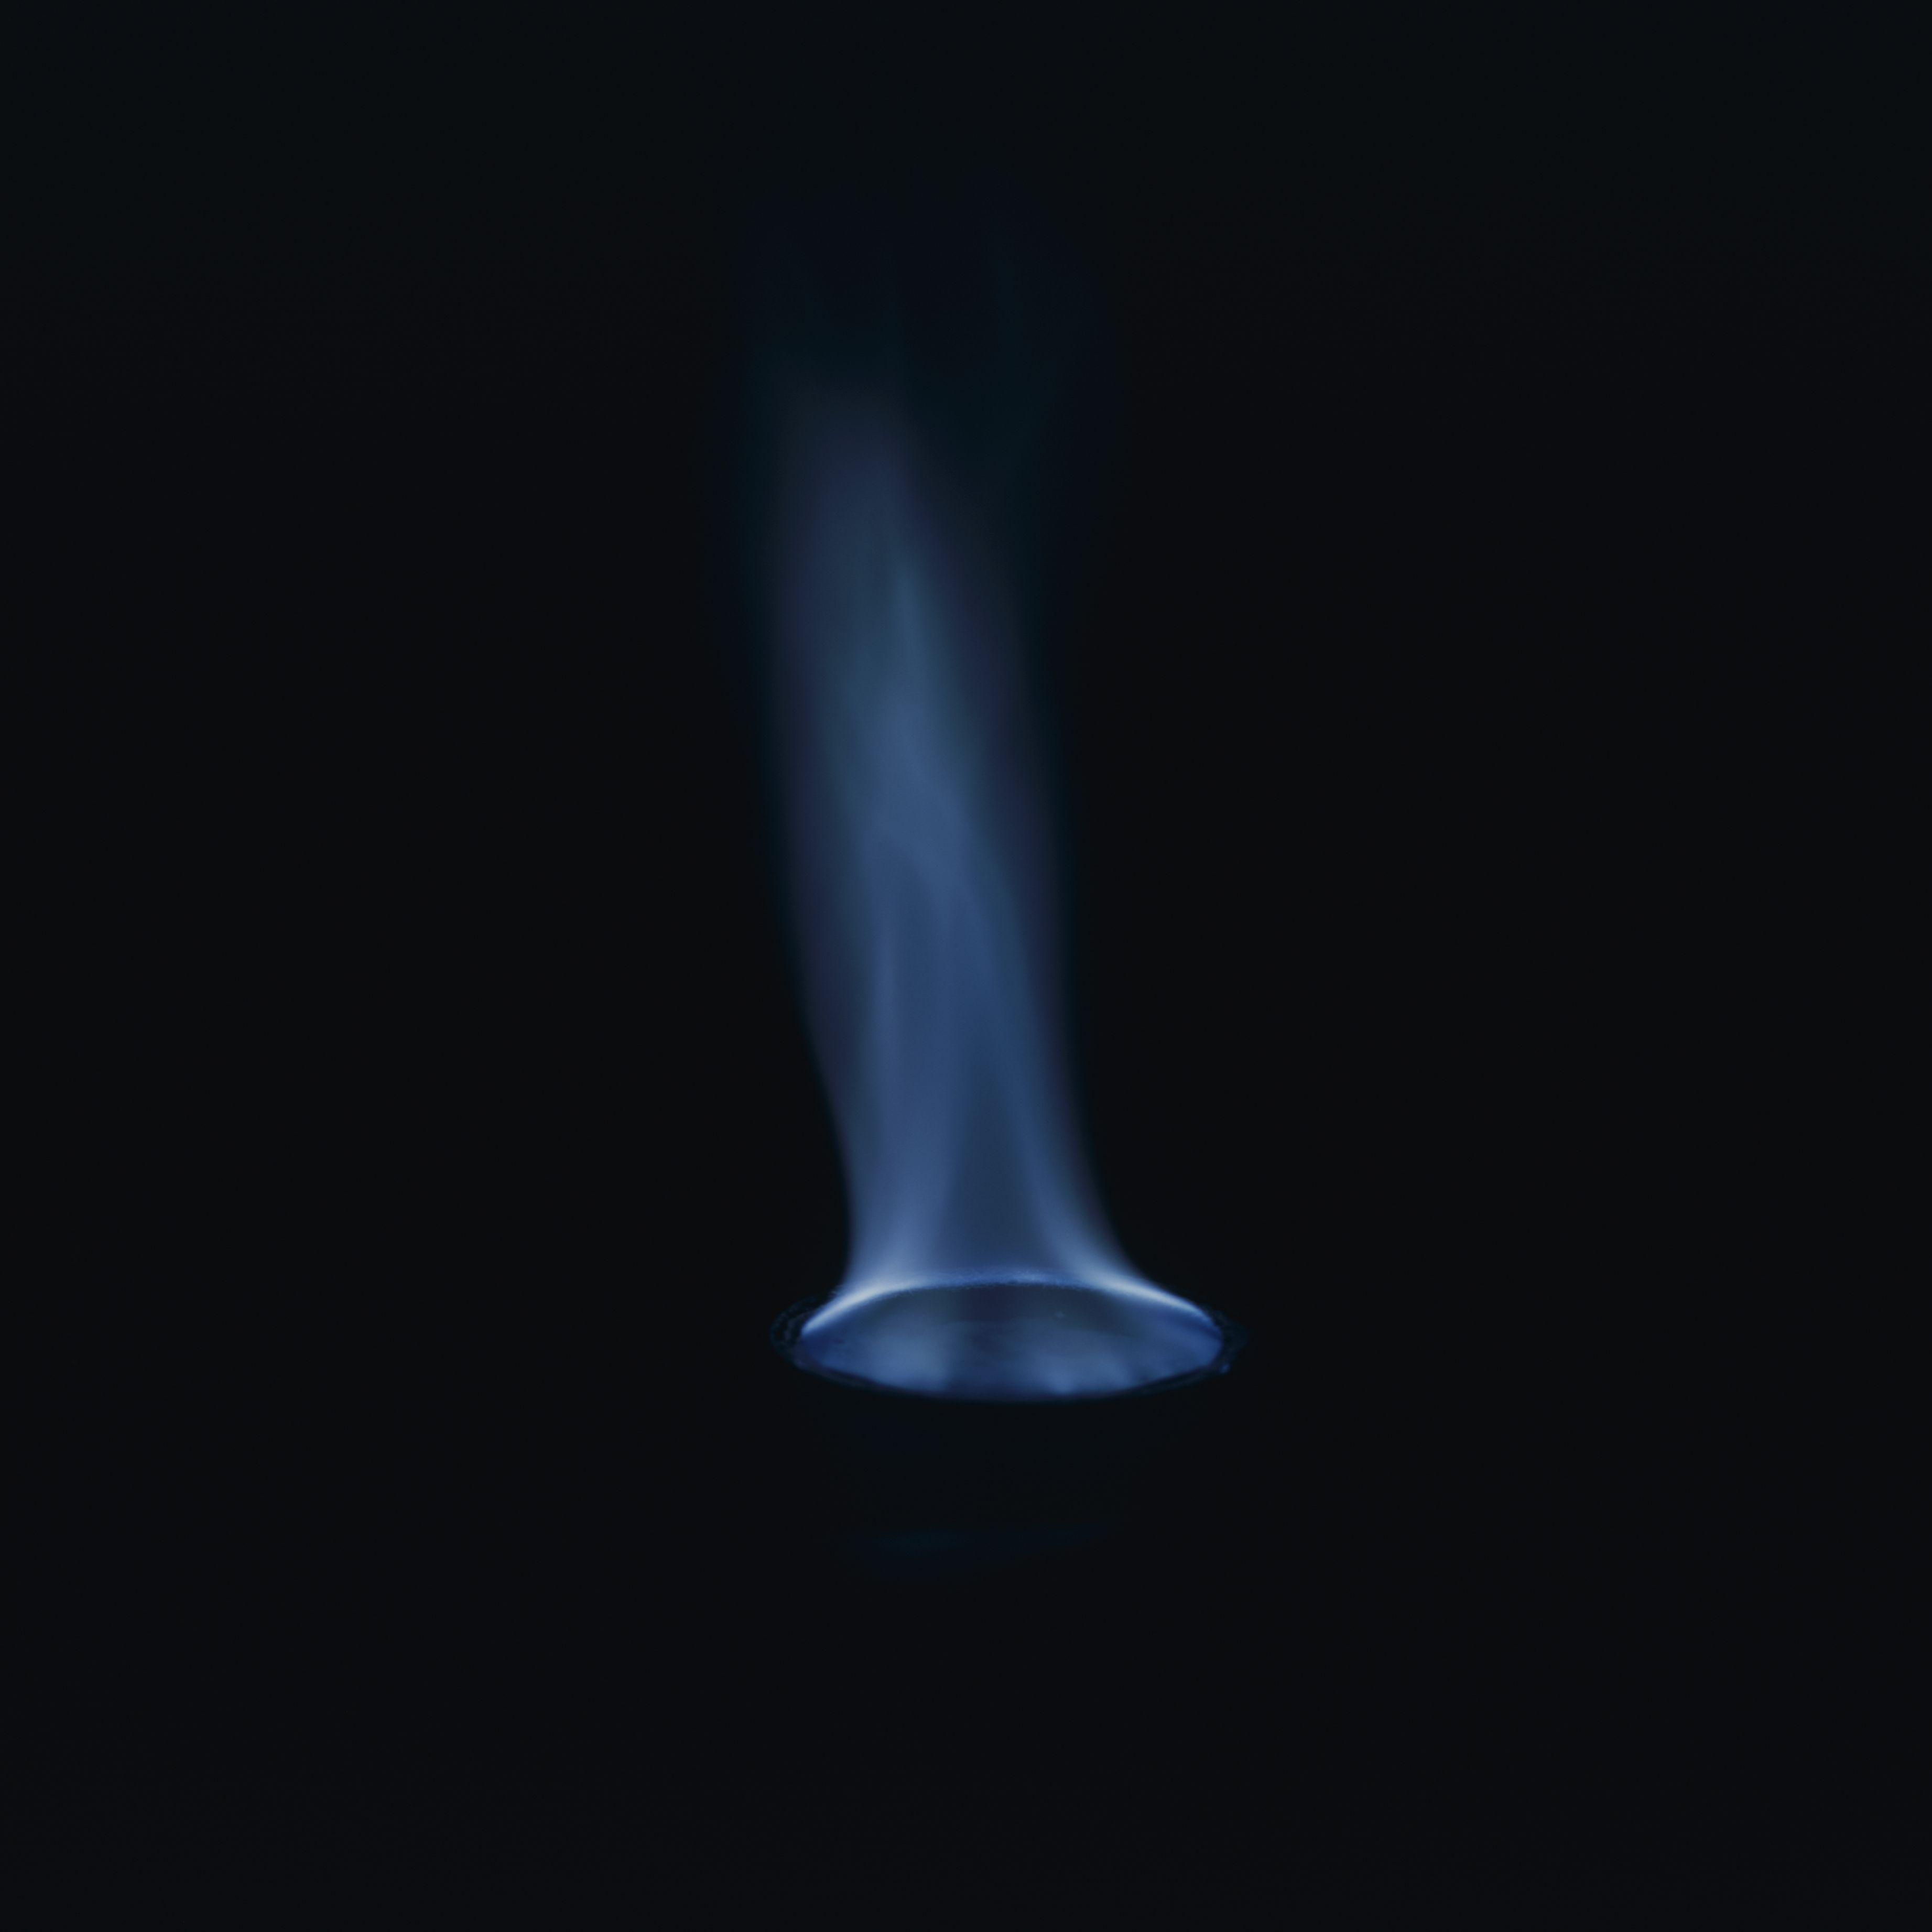 A blue flame test might not tell you which element is present, but at least you know which ones to exclude